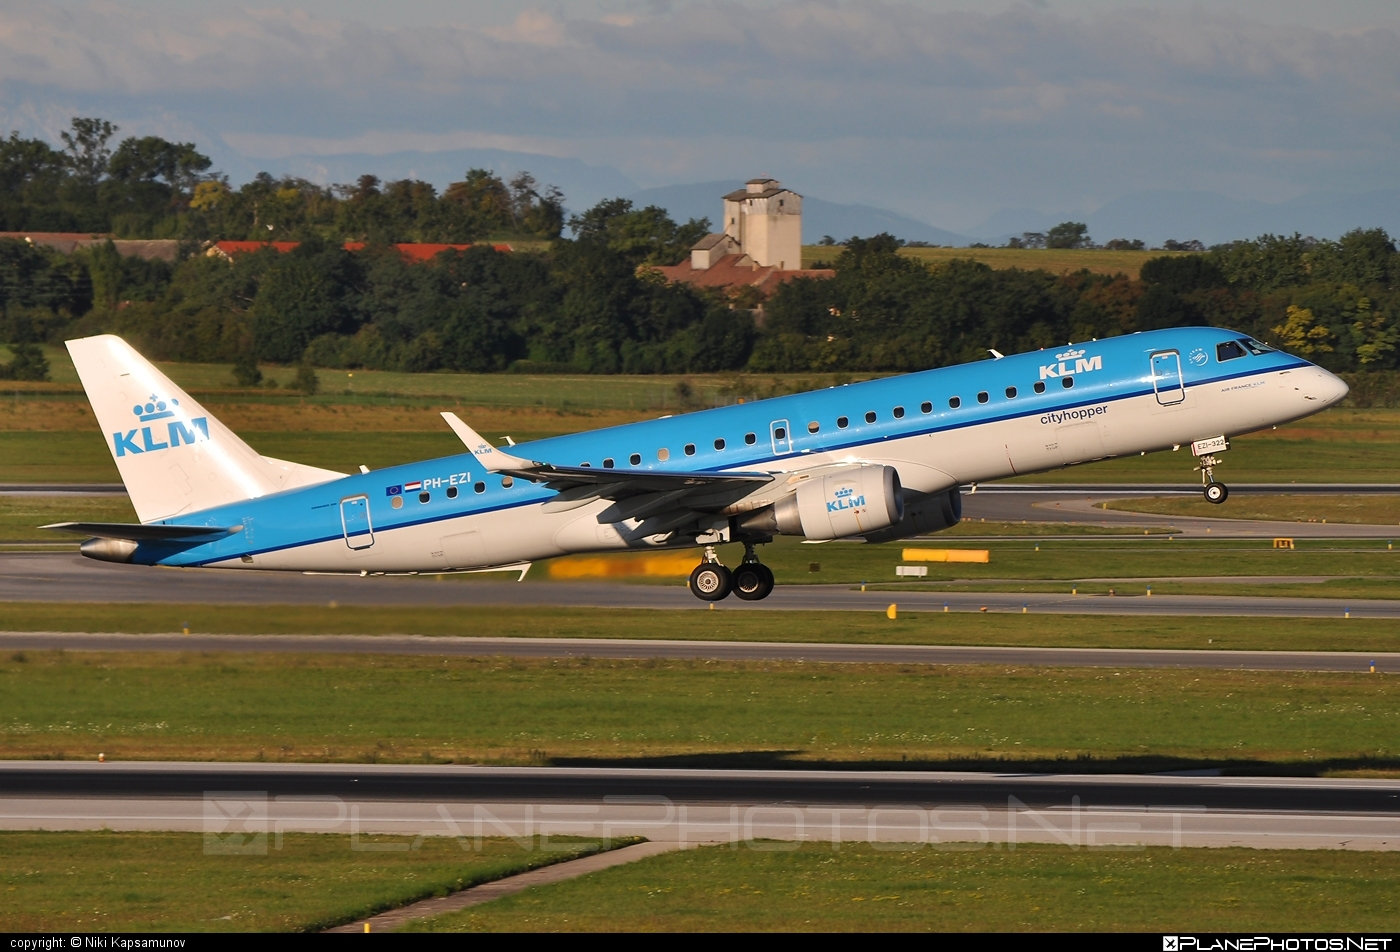 Embraer 190-100STD - PH-EZI operated by KLM Cityhopper #e190 #embraer #embraer190 #embraer190std #klm #klmcityhopper